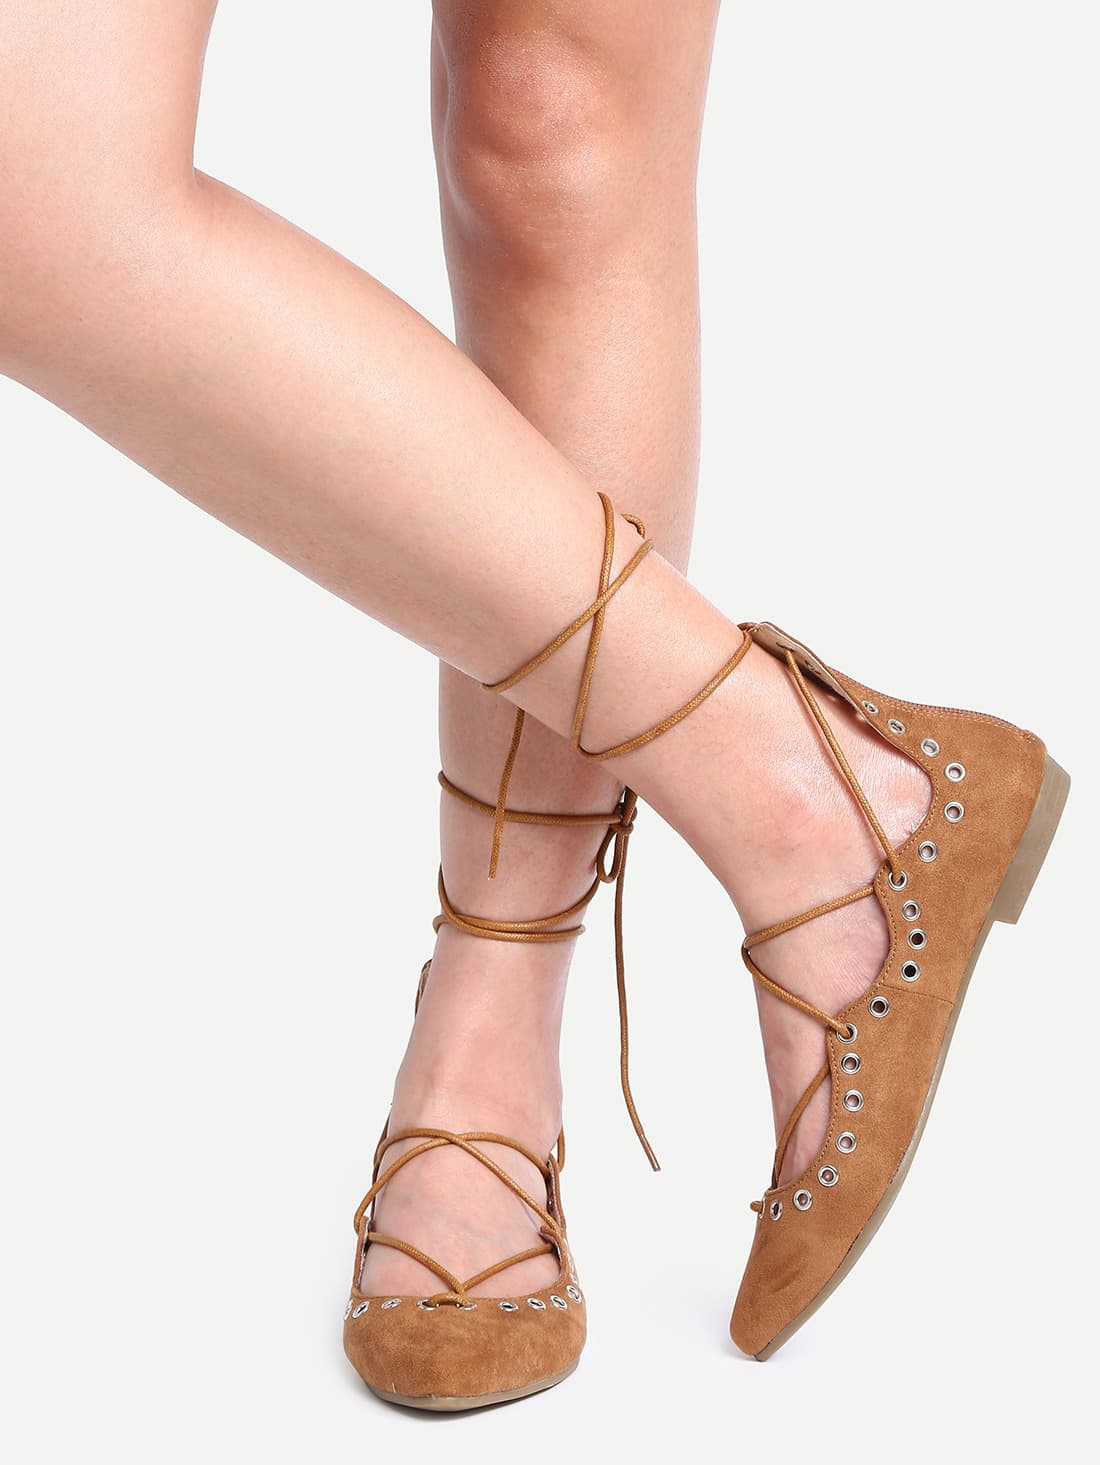 Laser-Cut Lace-Up Pointed Toe Flats - Camel shoes16051248